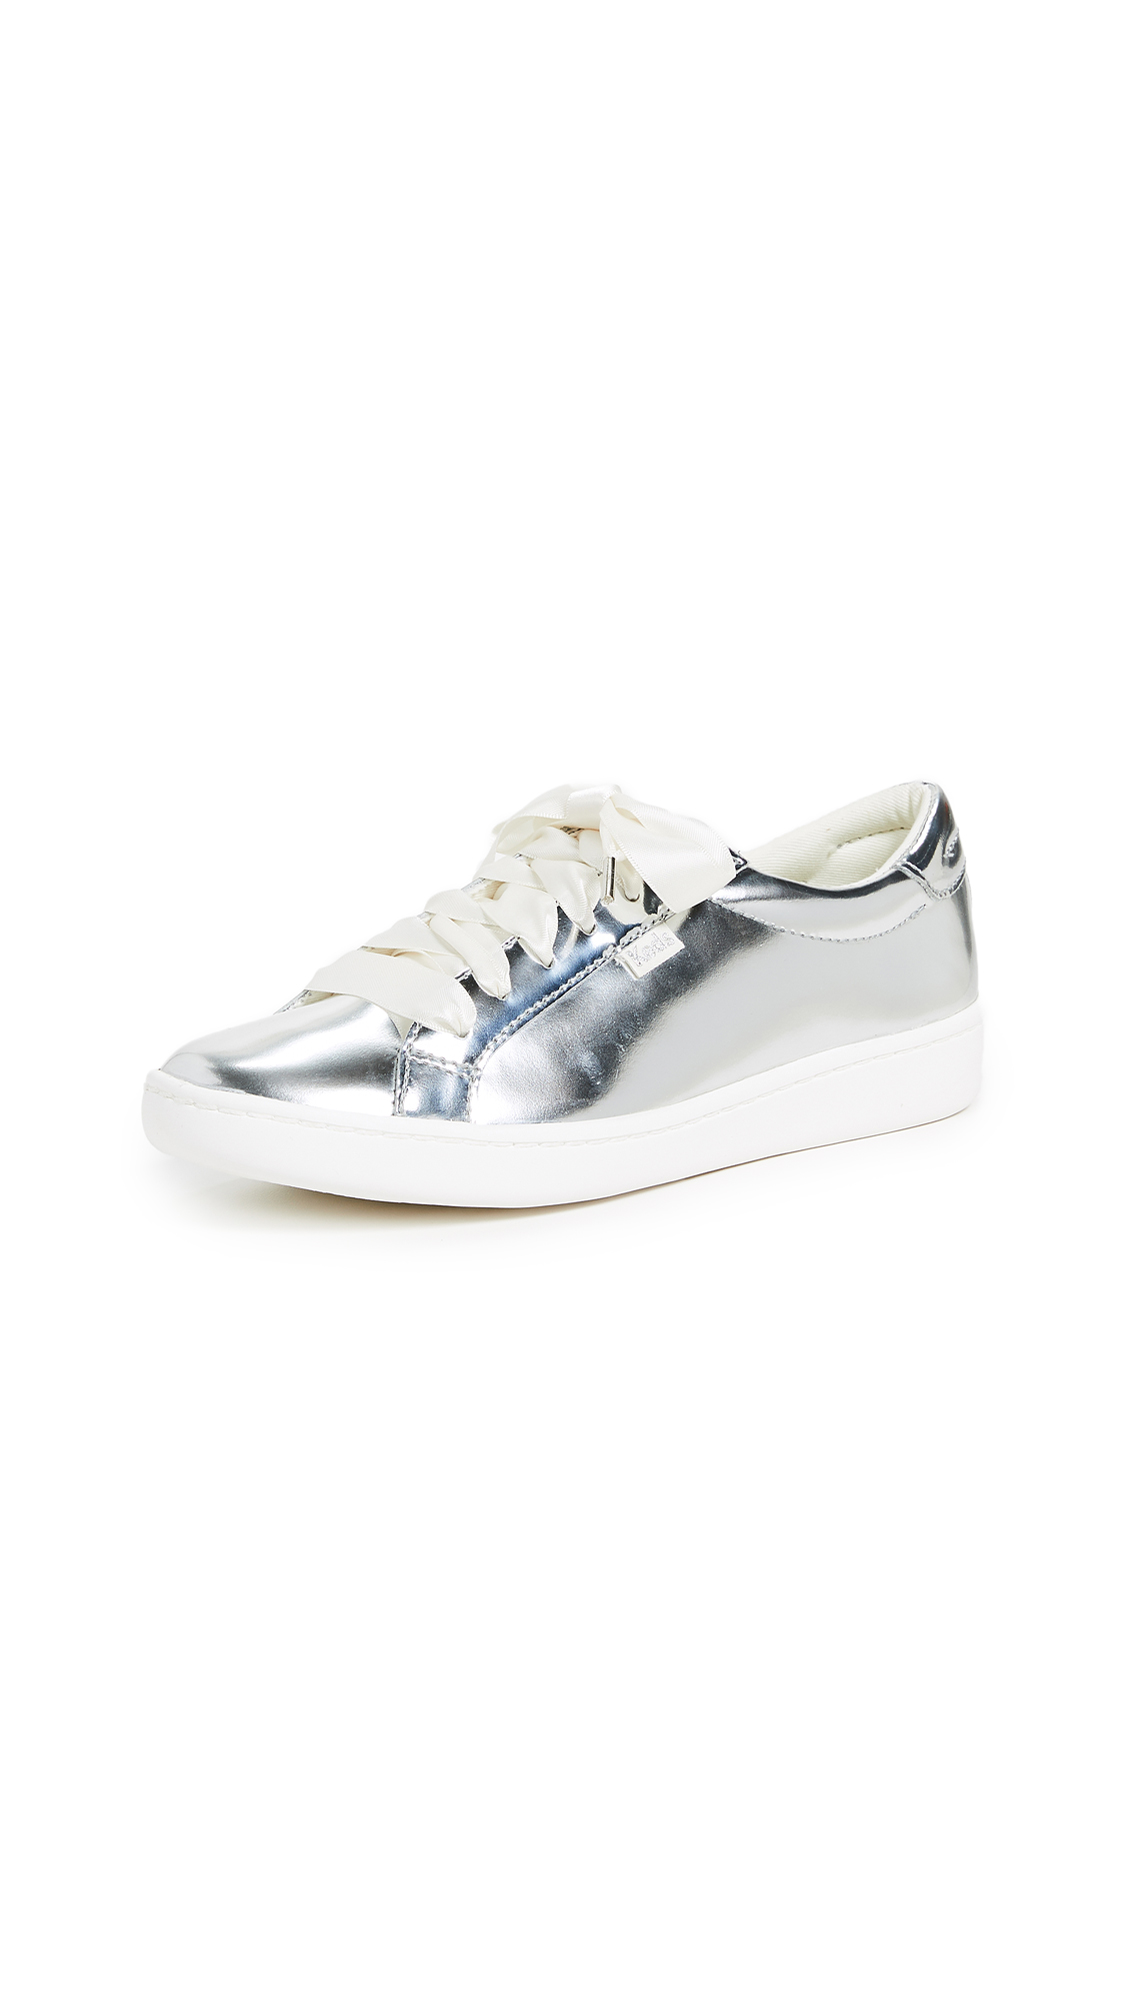 KEDS X Kate Spade Ace Sneakers in Silver